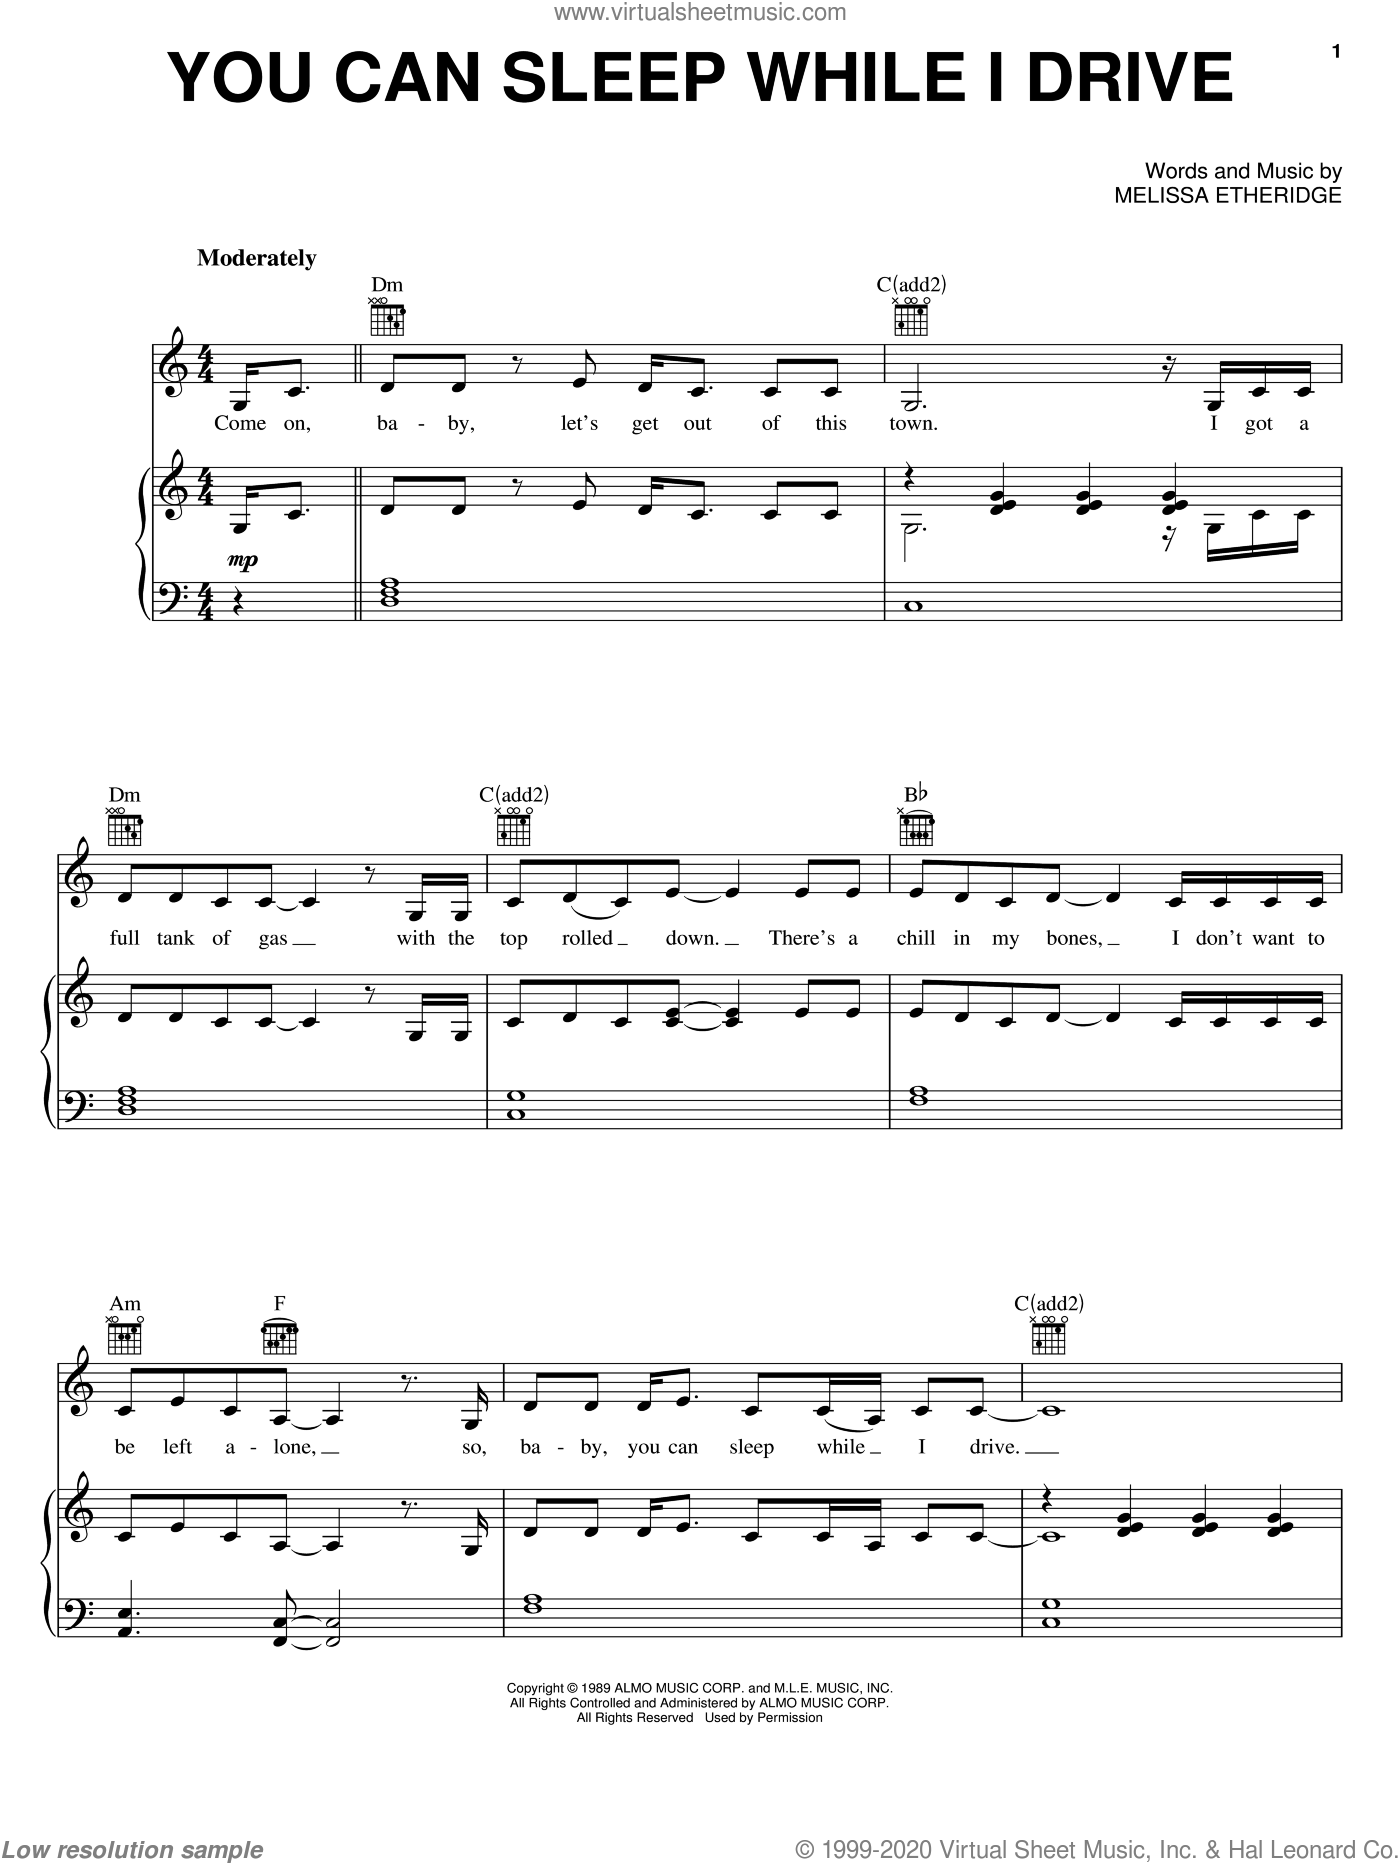 You Can Sleep While I Drive sheet music for voice, piano or guitar by Melissa Etheridge. Score Image Preview.